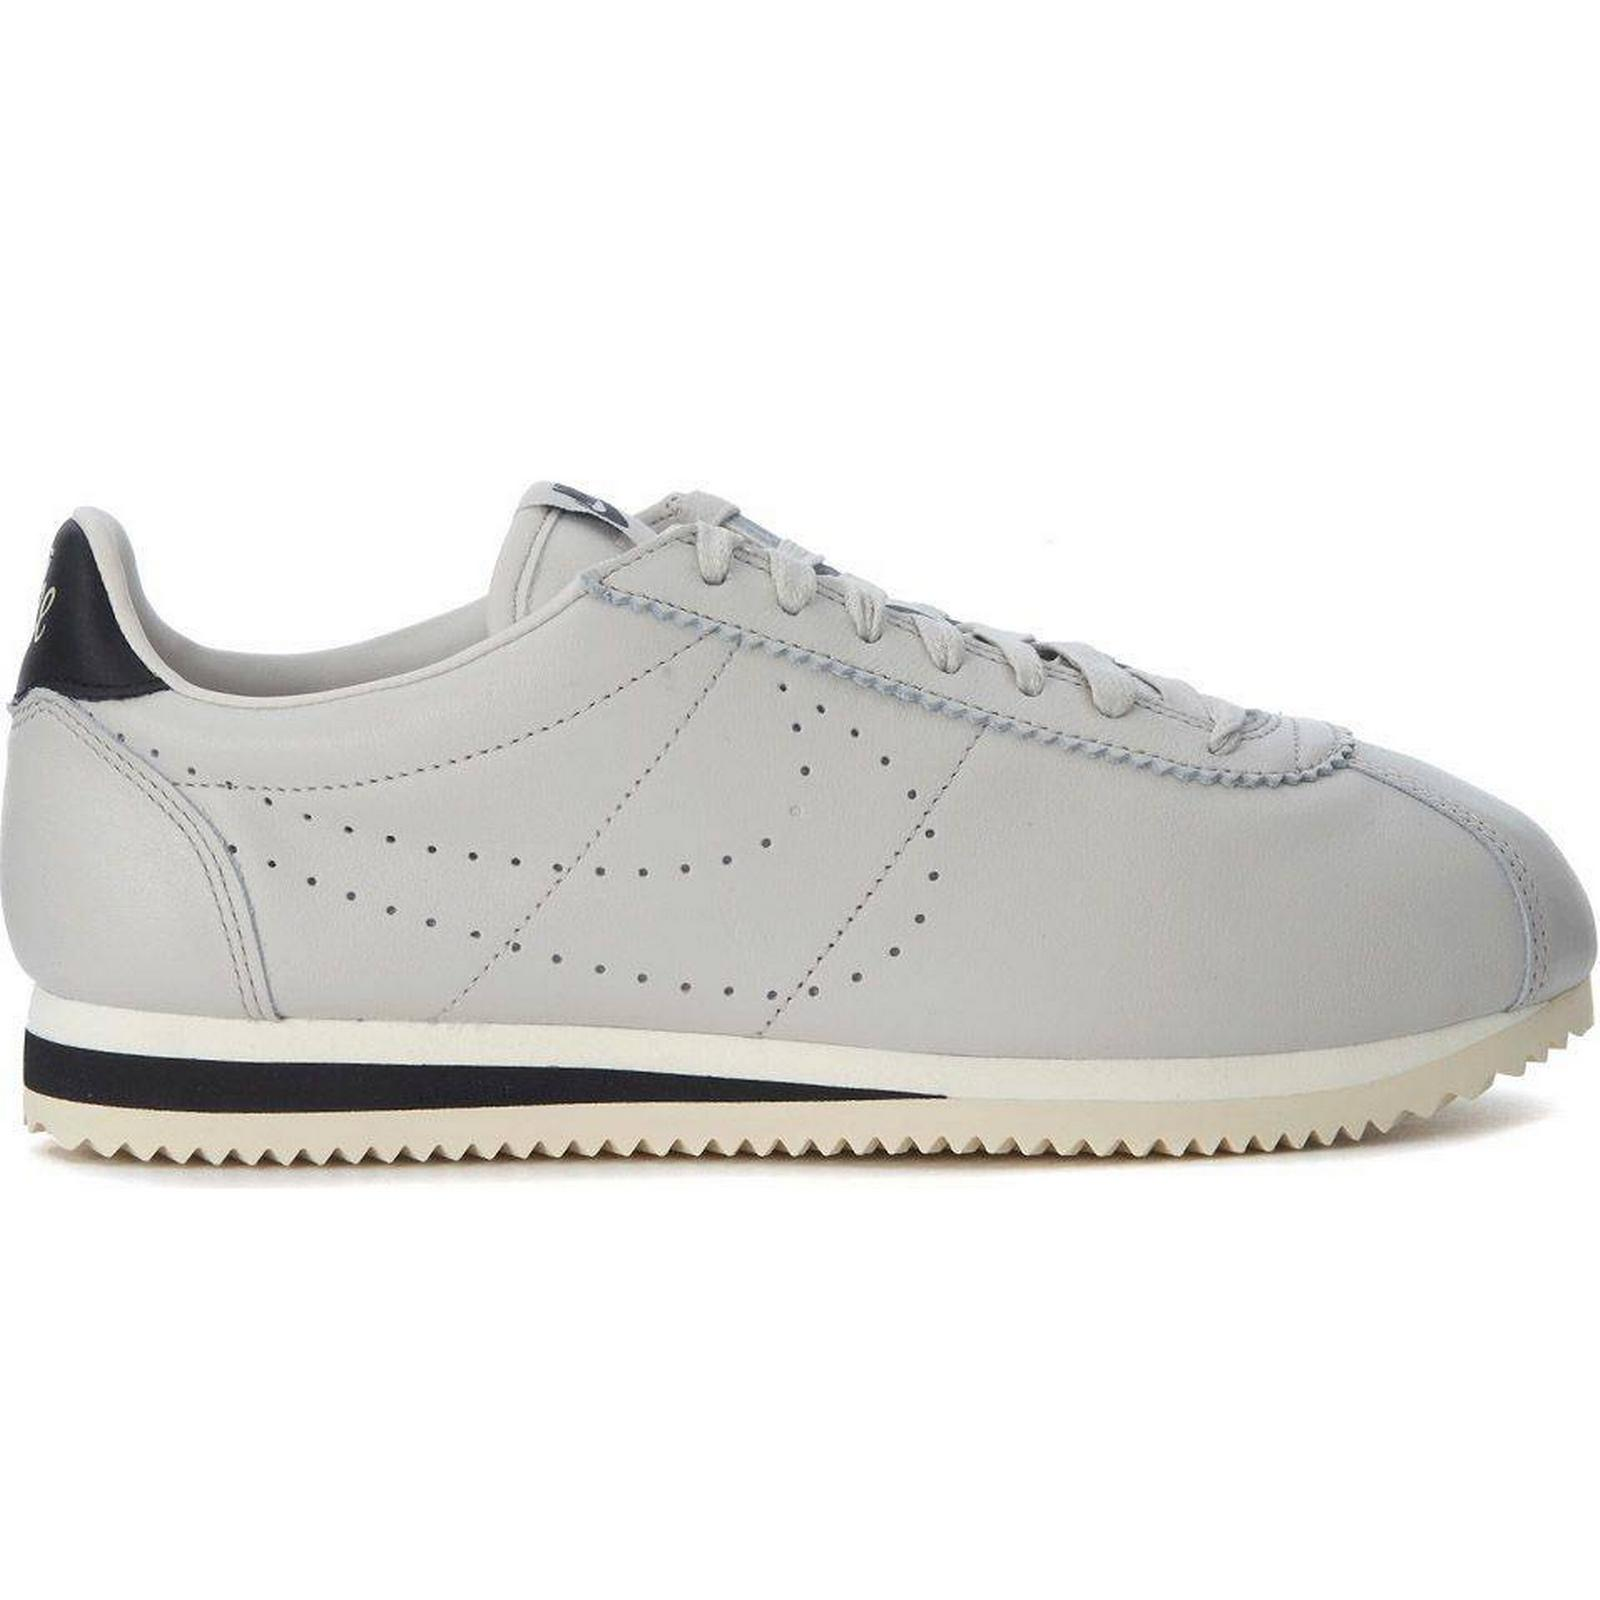 Nike Classic Cortez Leather Premium Premium Leather Light Grey Leather Sneakers 312f4d